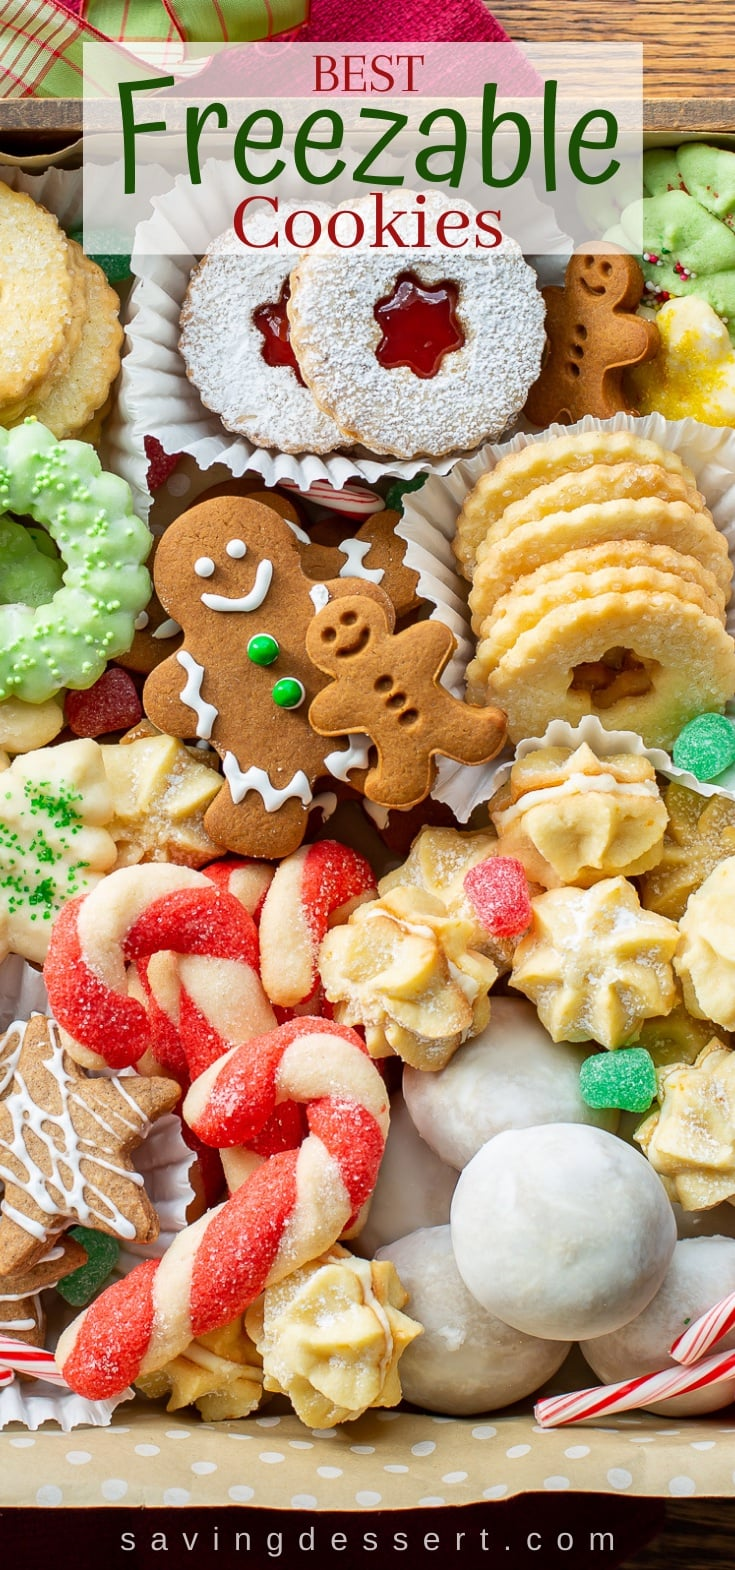 A box of assorted holiday cookies